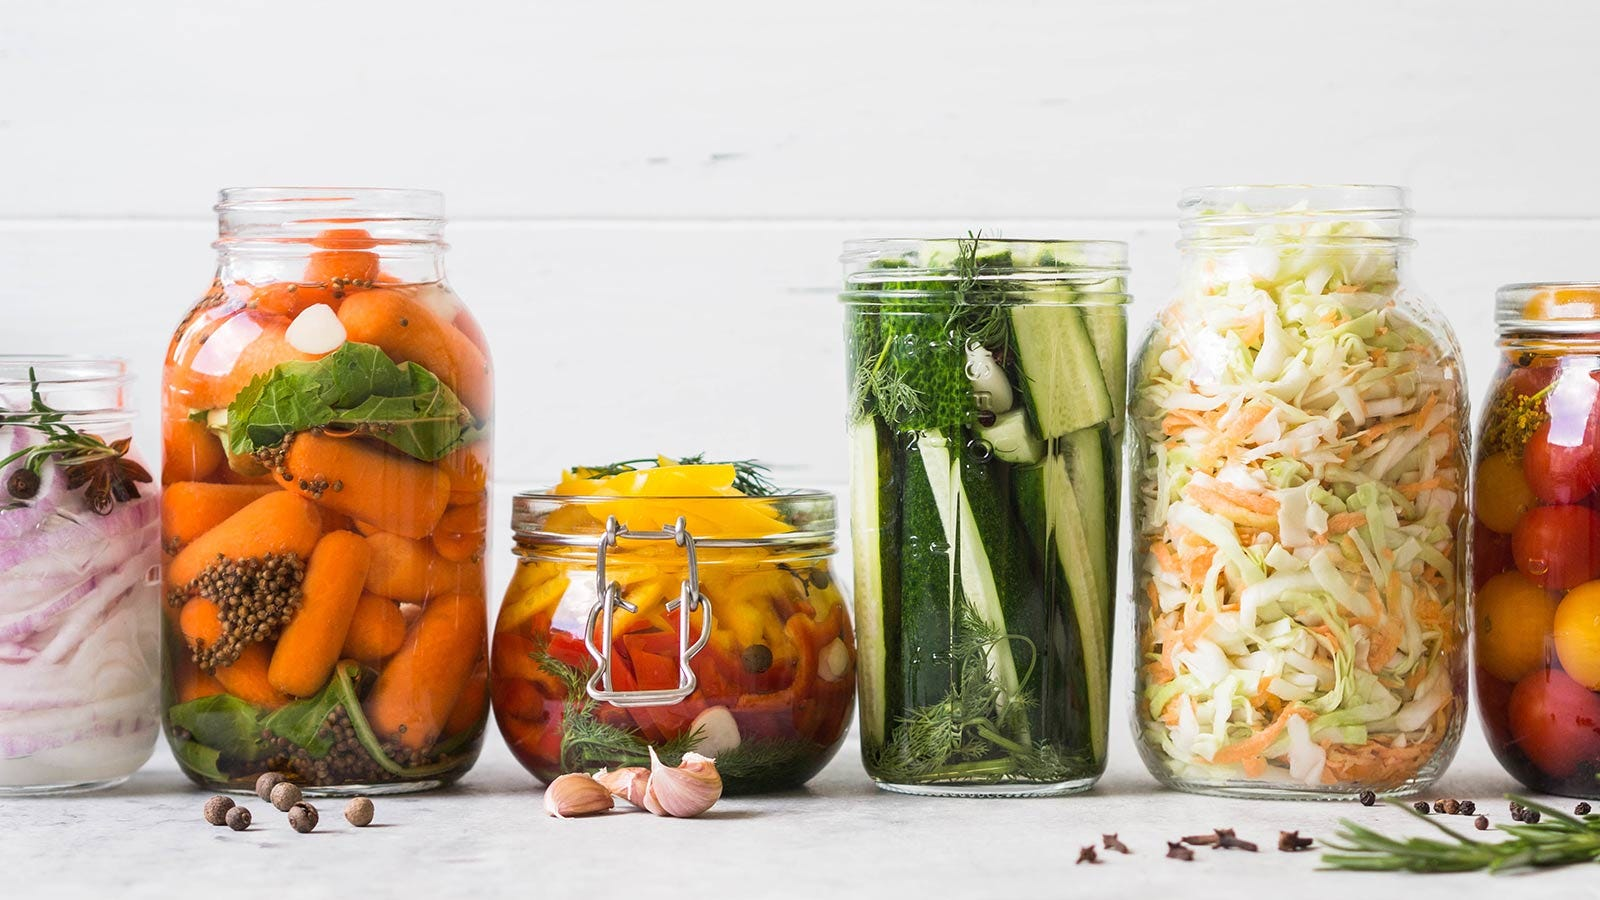 Jars of pickled vegetables loaded with brine and spices.